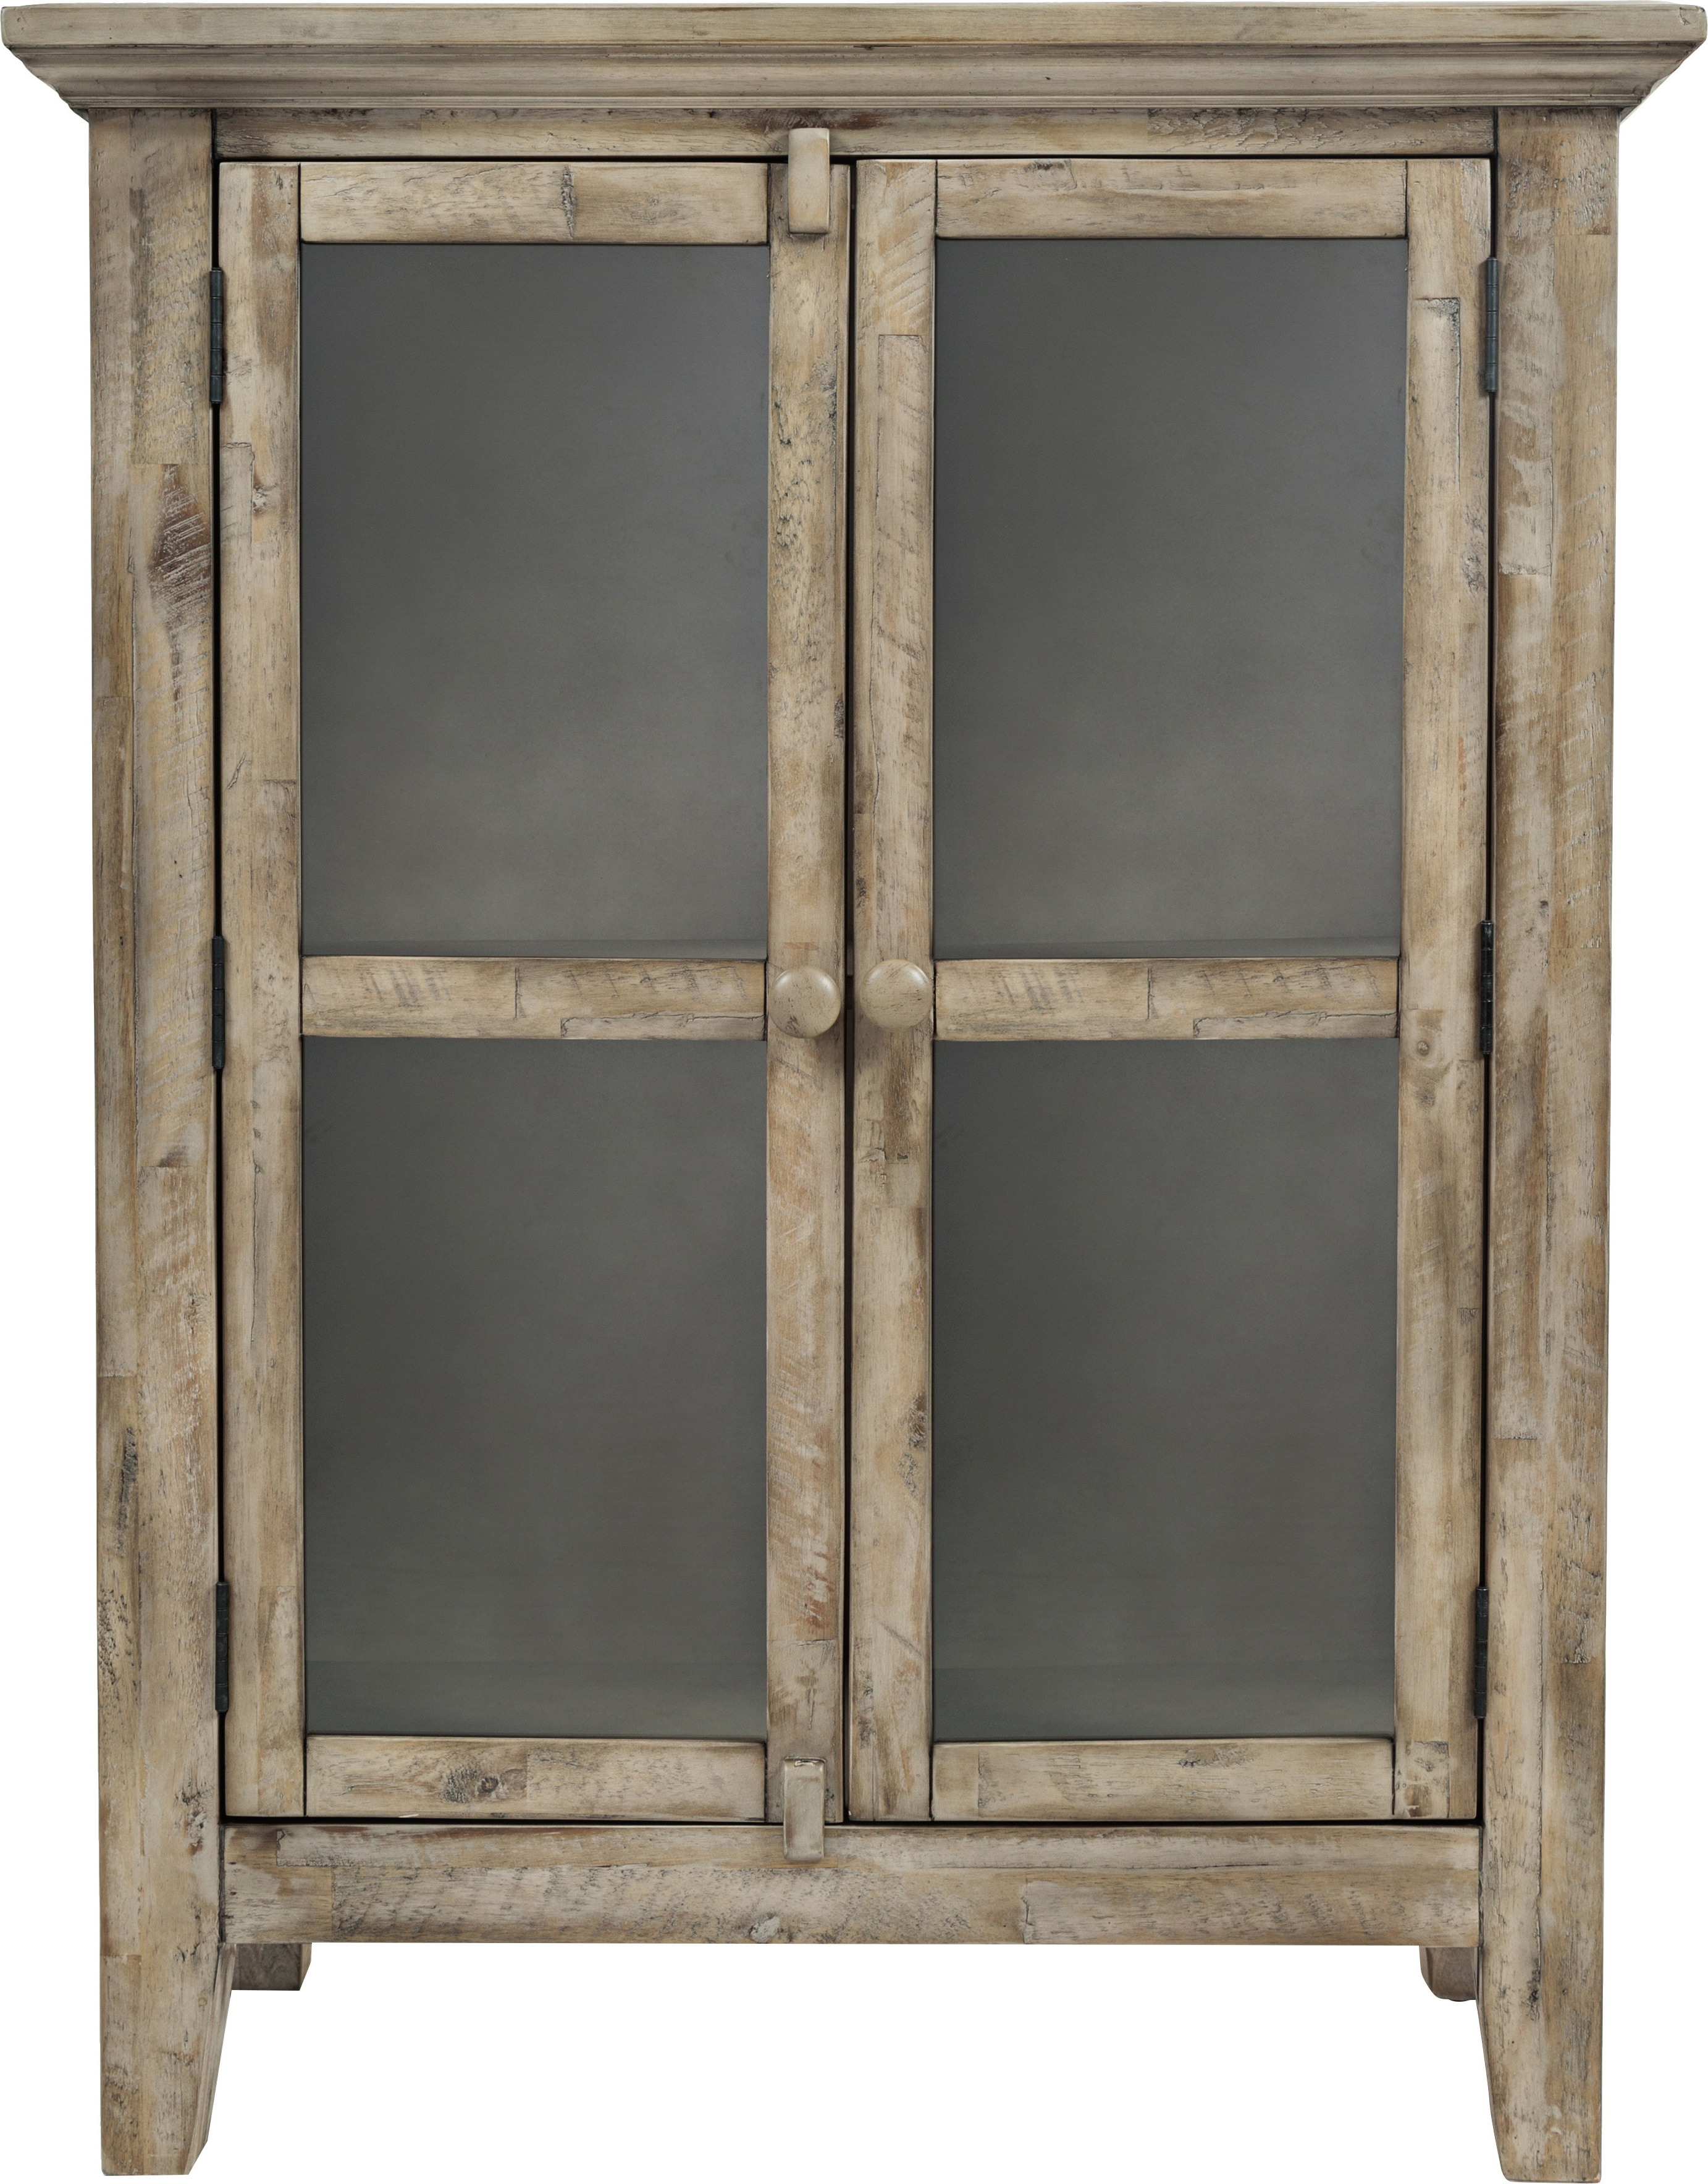 Eau Claire 2 Door Accent Cabinet Pertaining To Latest Eau Claire 6 Door Accent Cabinets (Gallery 12 of 20)